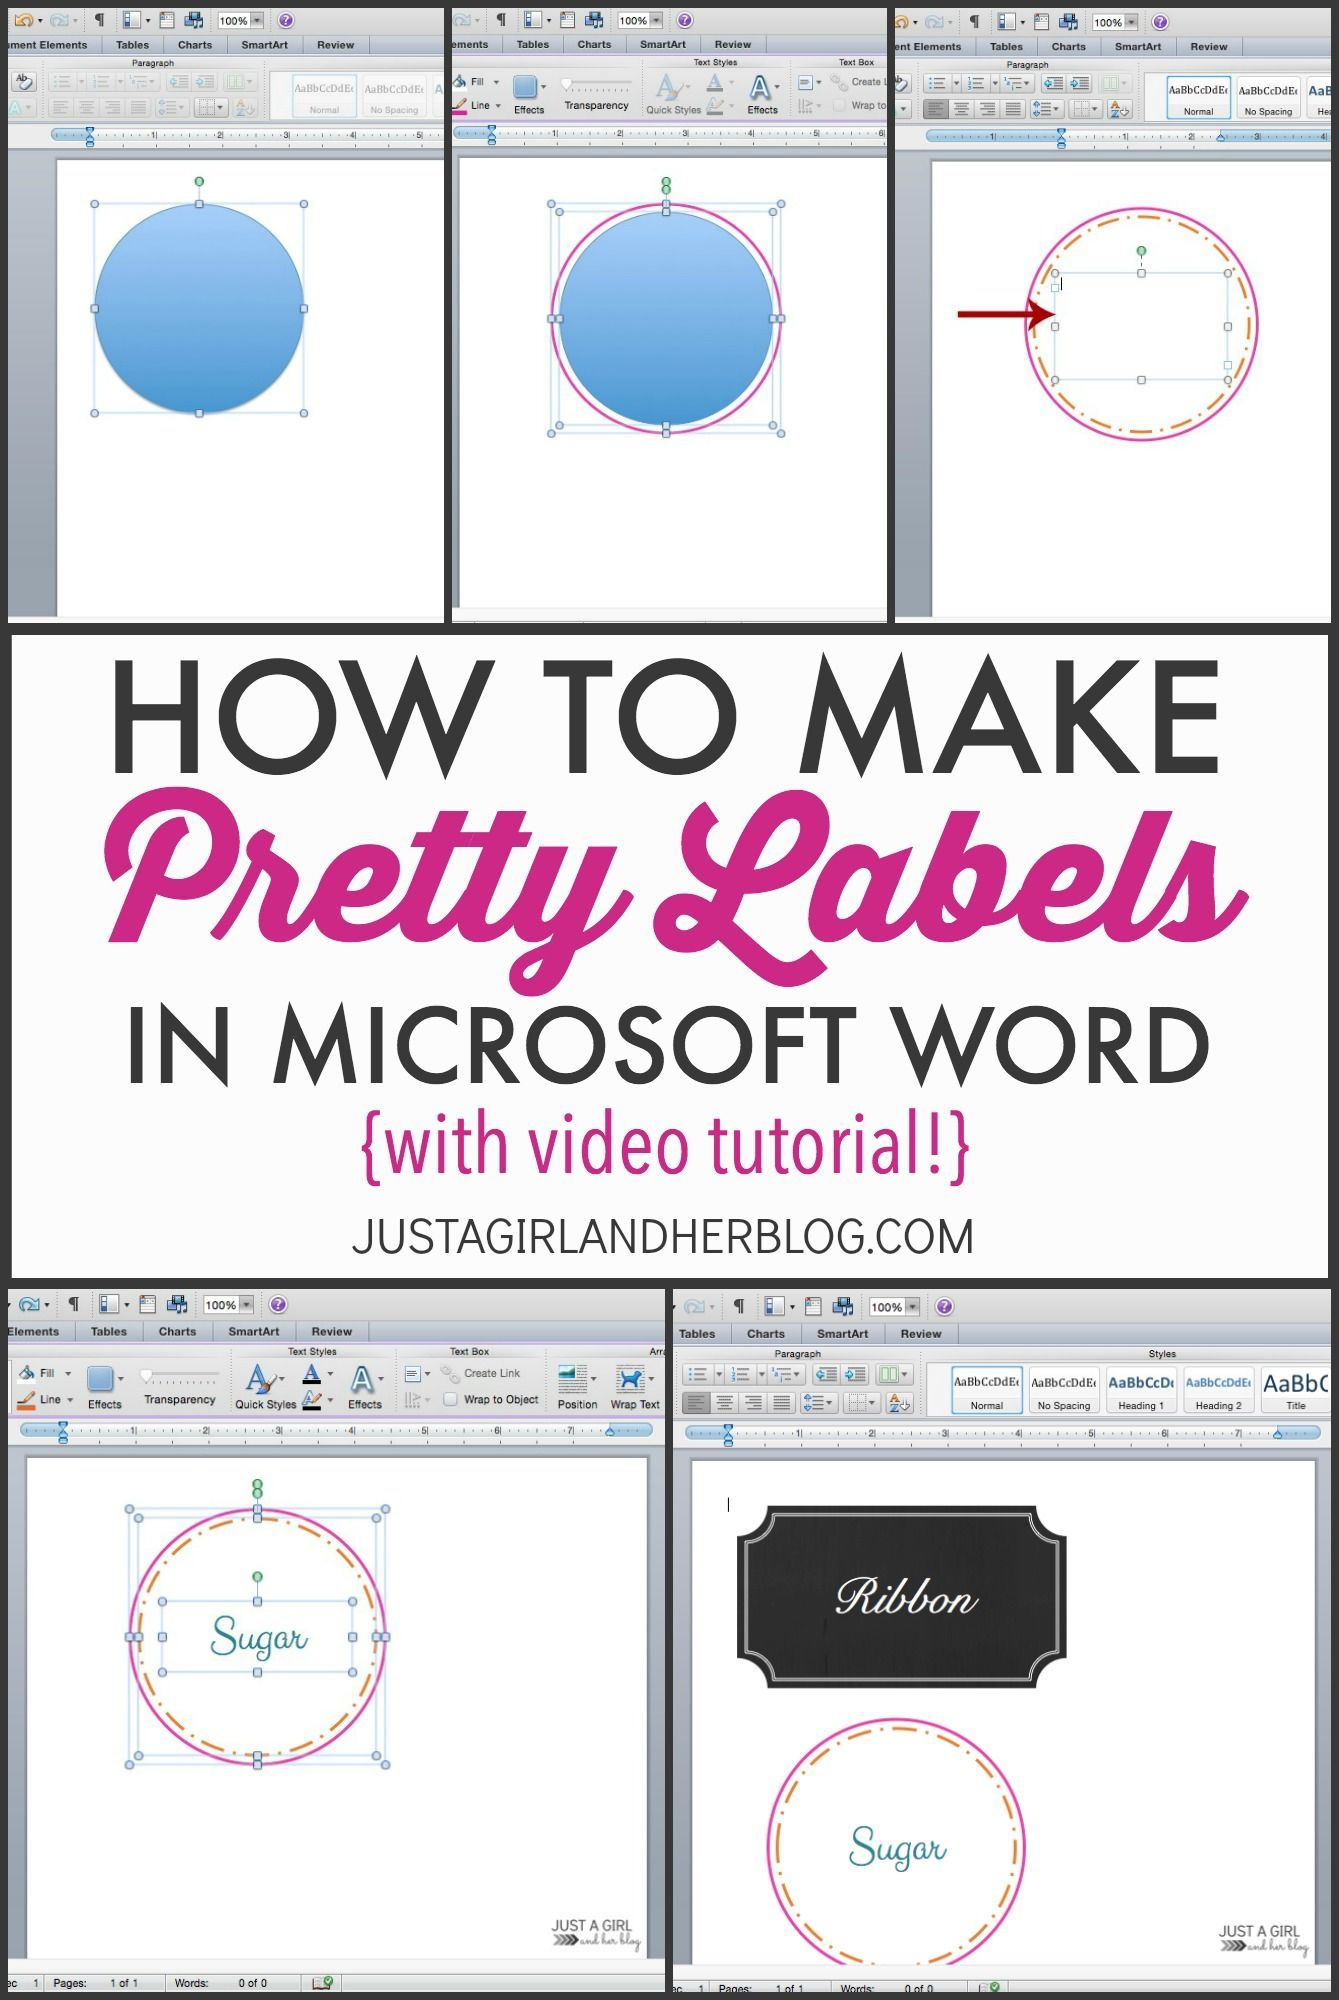 000 Impressive Create Label In Microsoft Word Concept  How To Tab 2010 365 File FolderFull